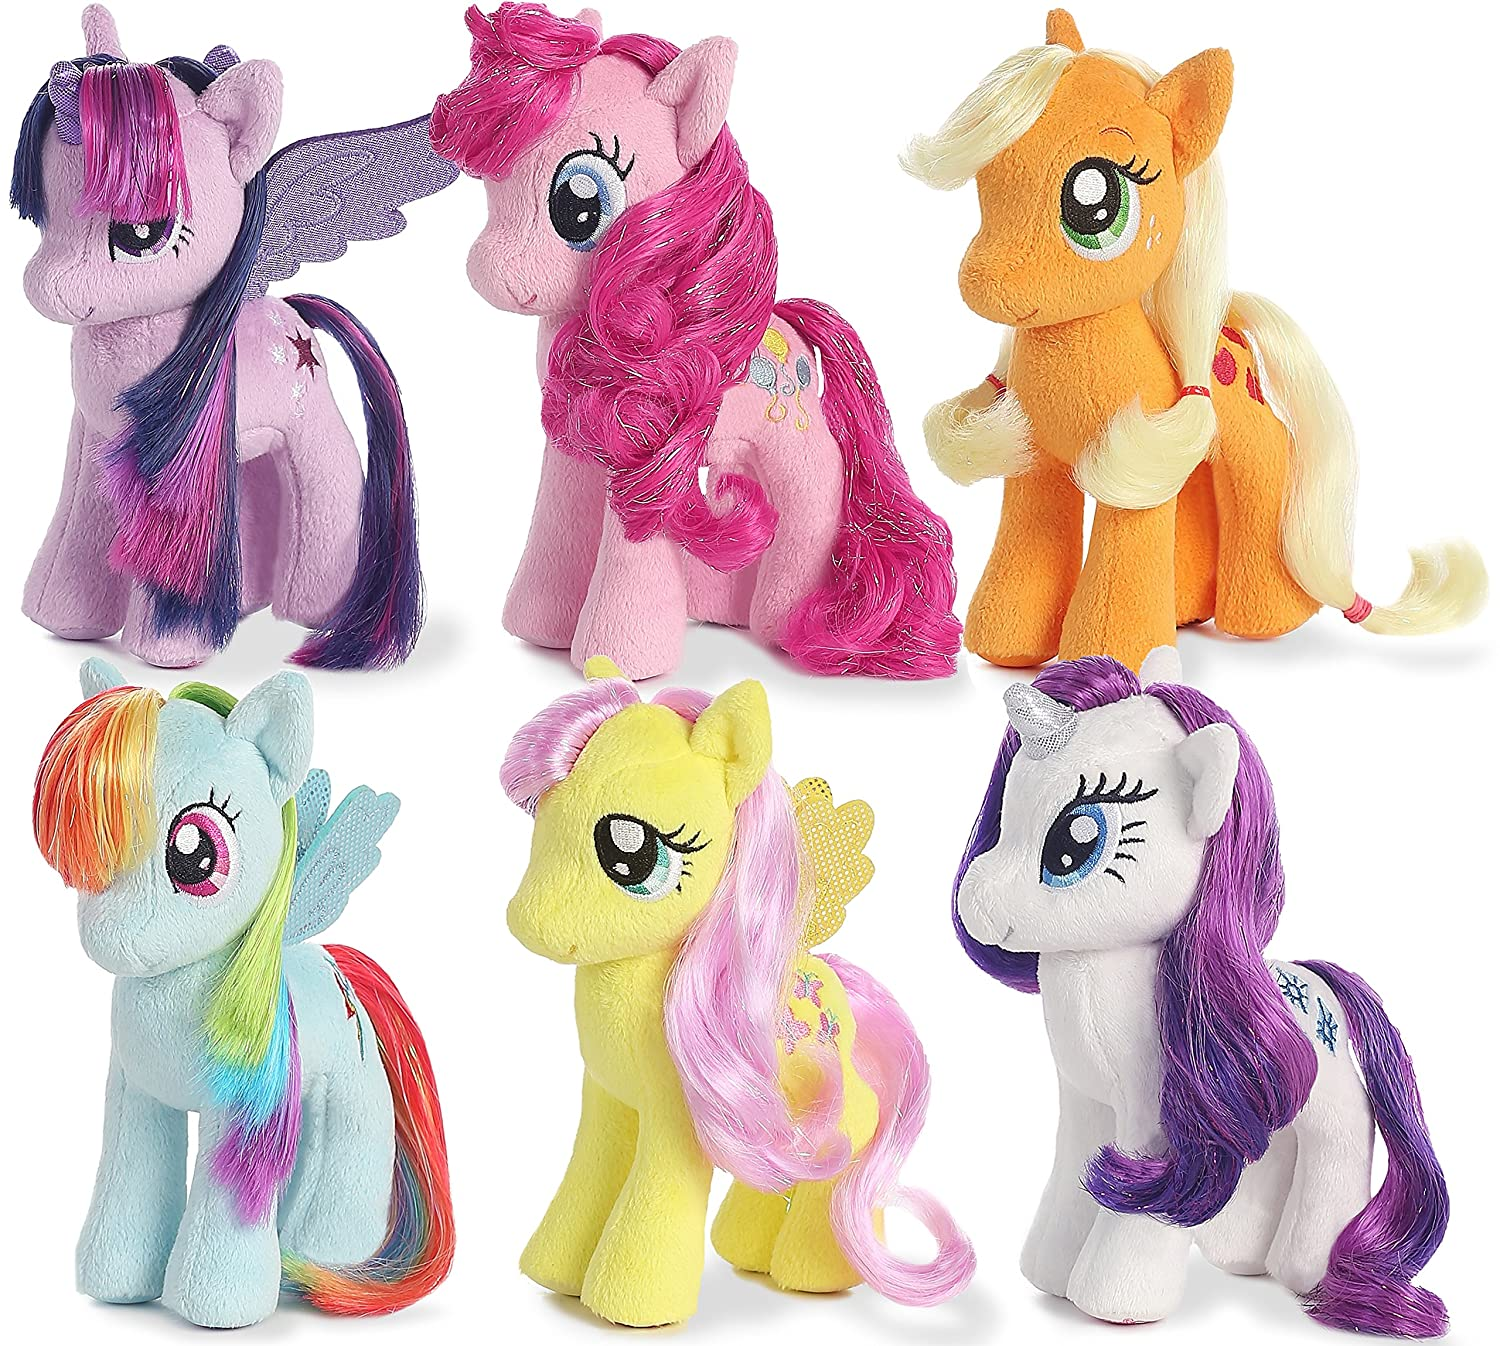 Aurora My Little Pony My Little Pony Friendship Magic